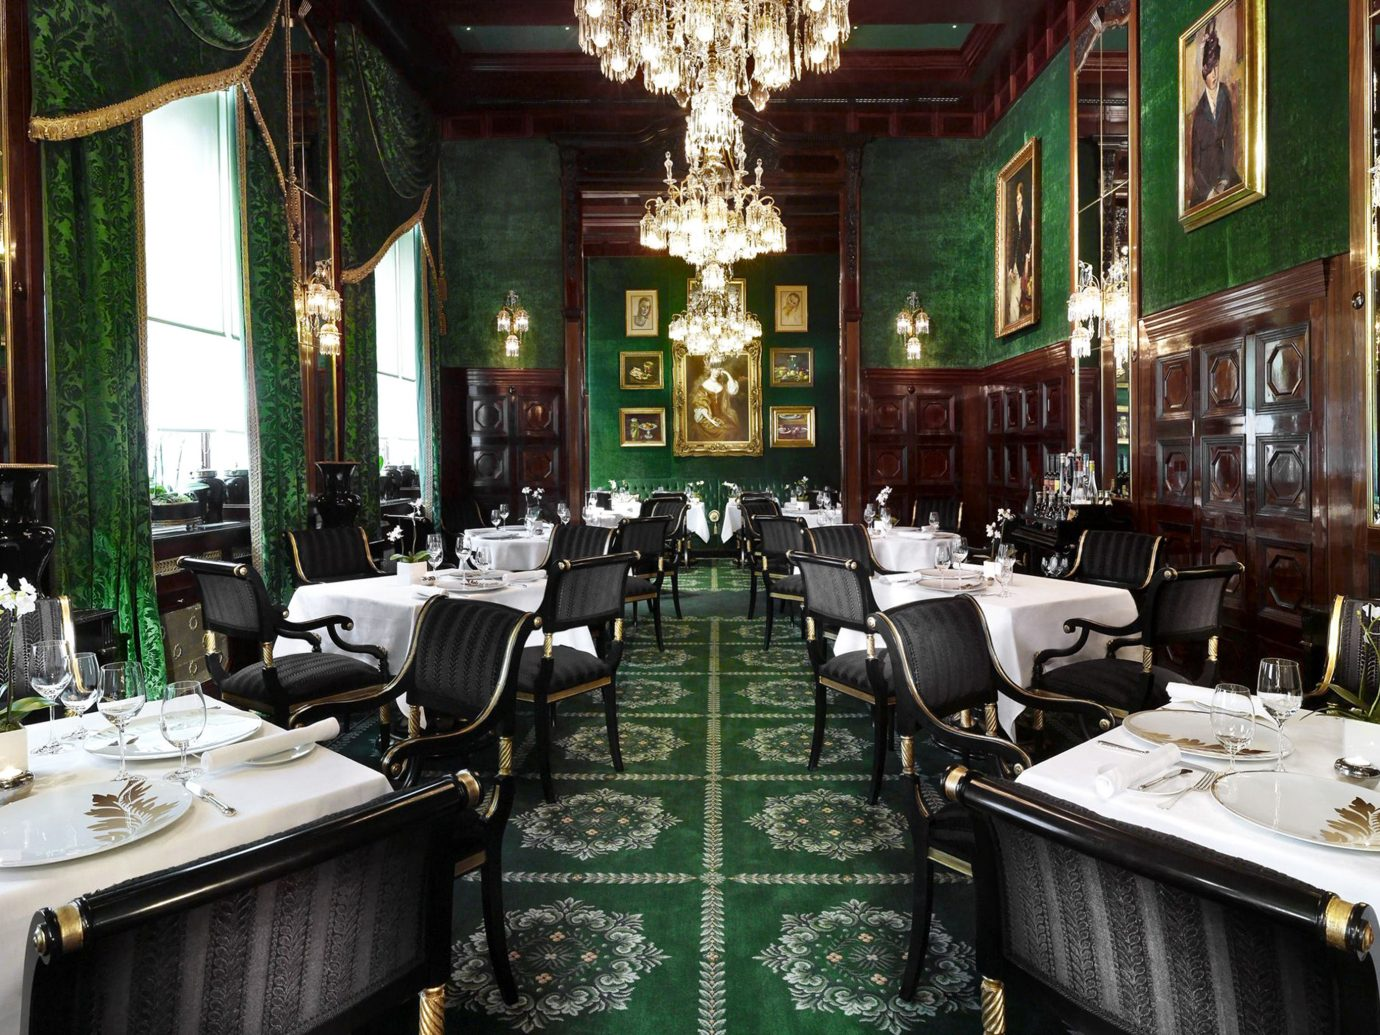 Austria Bar Dining Drink Eat europe Historic Hotels Vienna indoor window restaurant meal green estate function hall interior design decorated furniture dining room